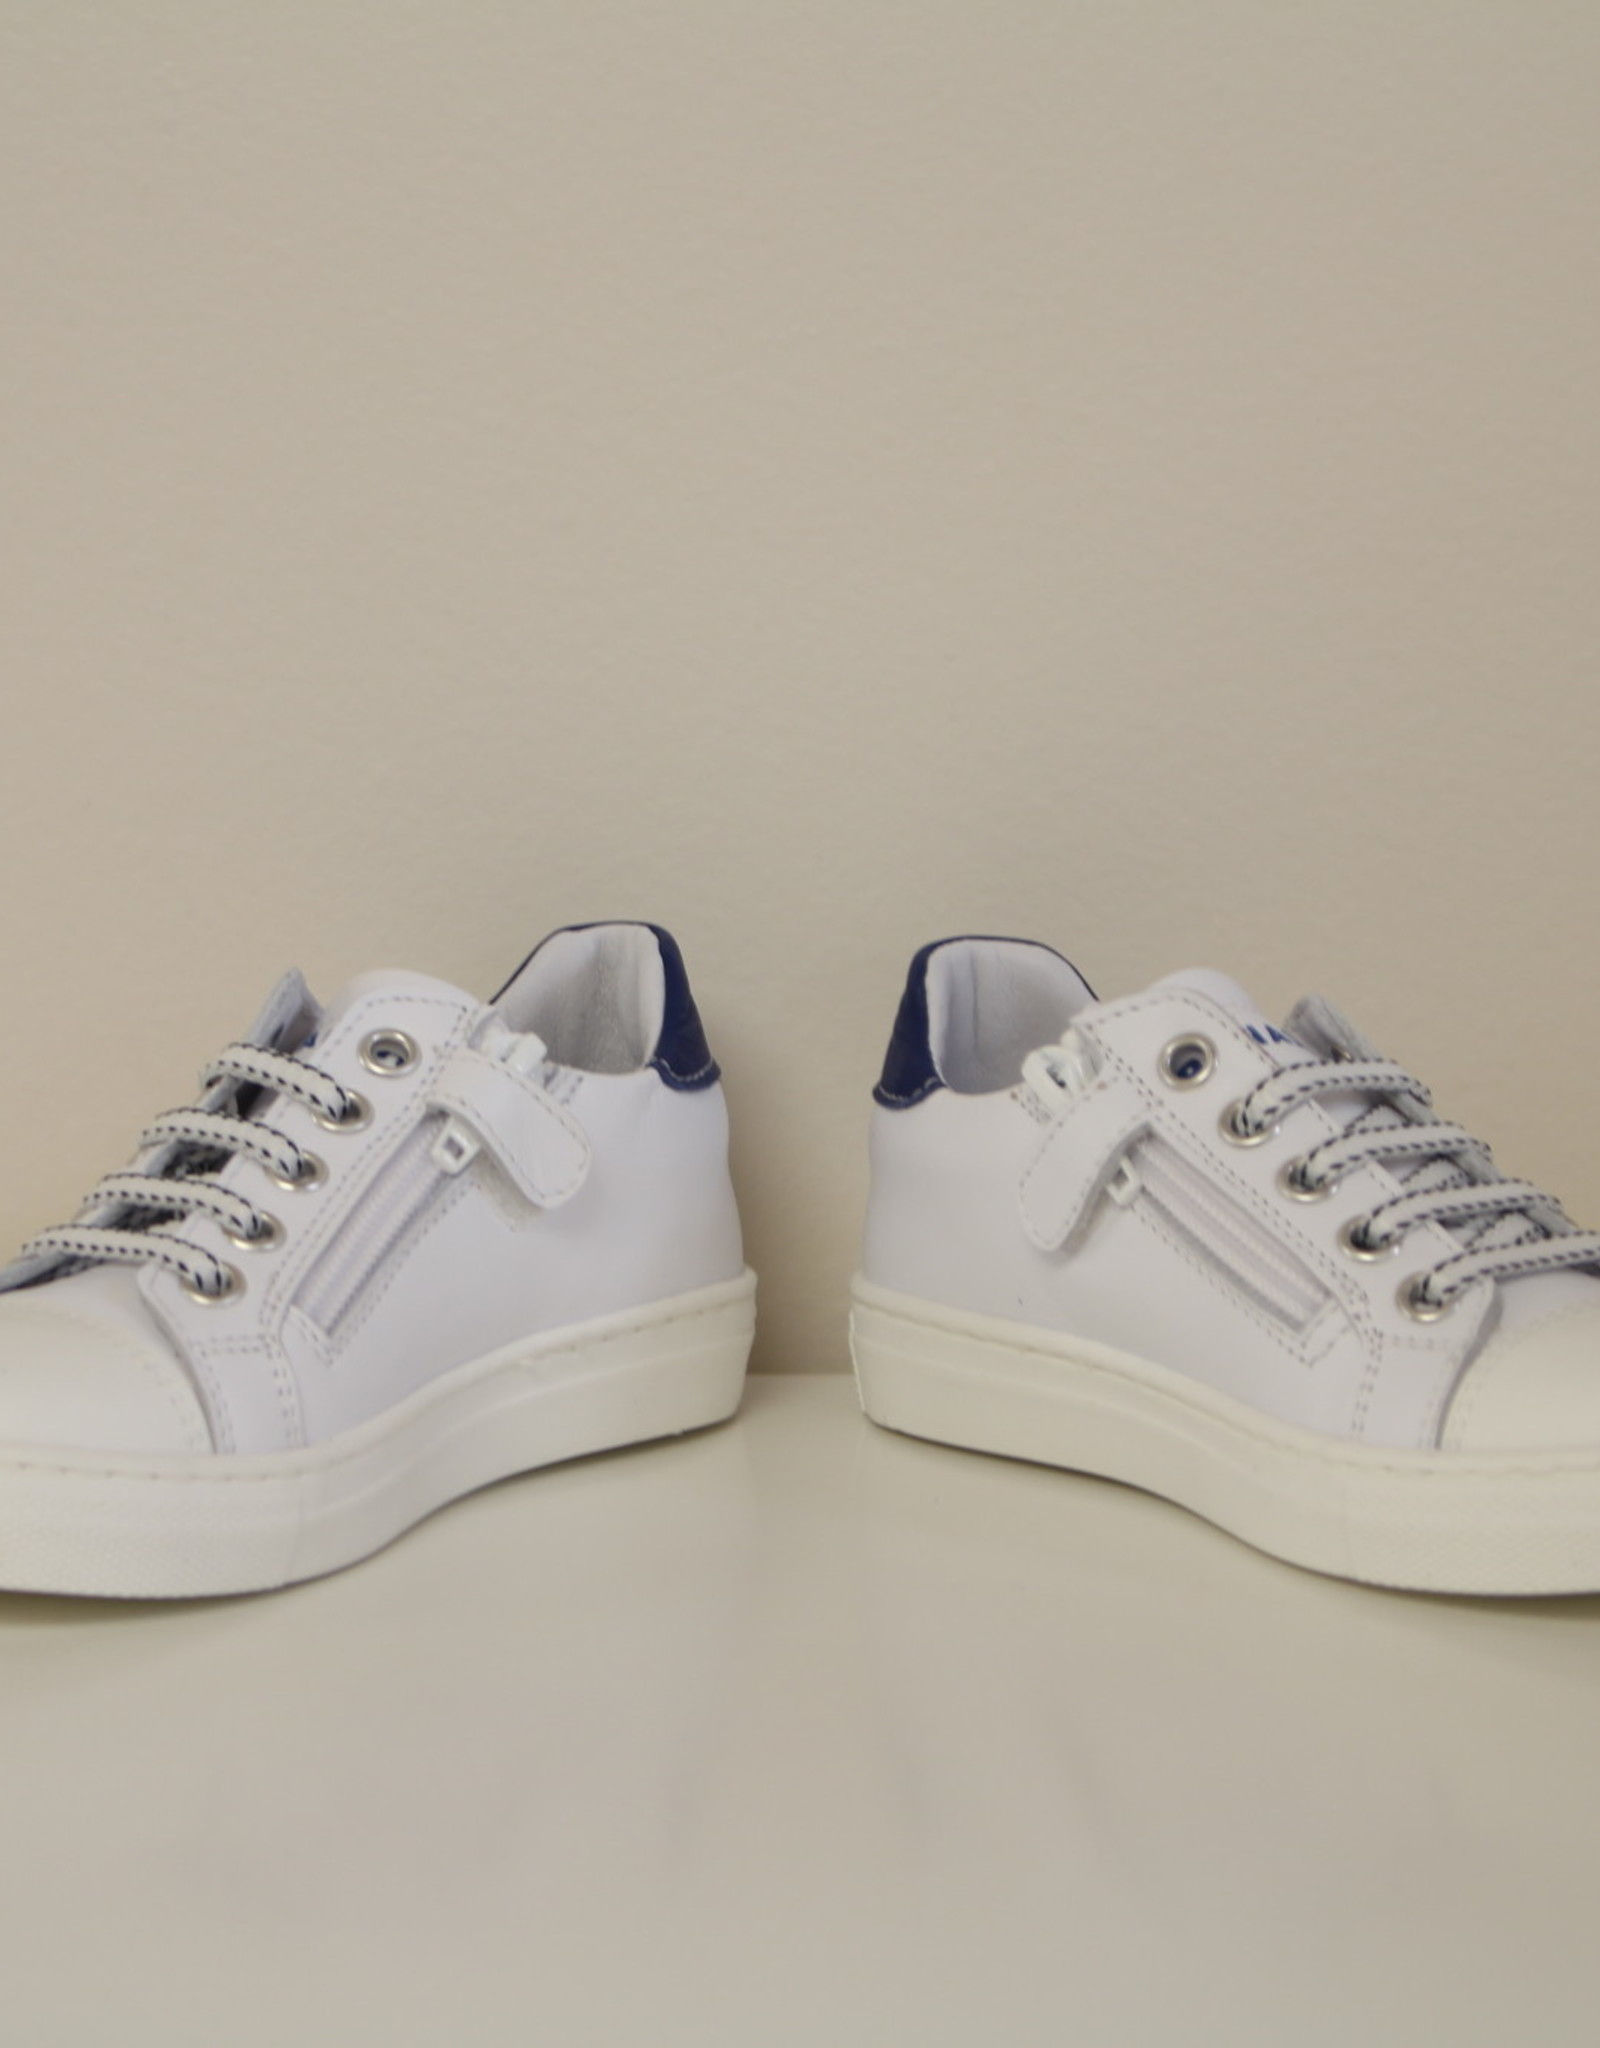 Banaline witte sneaker rood accent